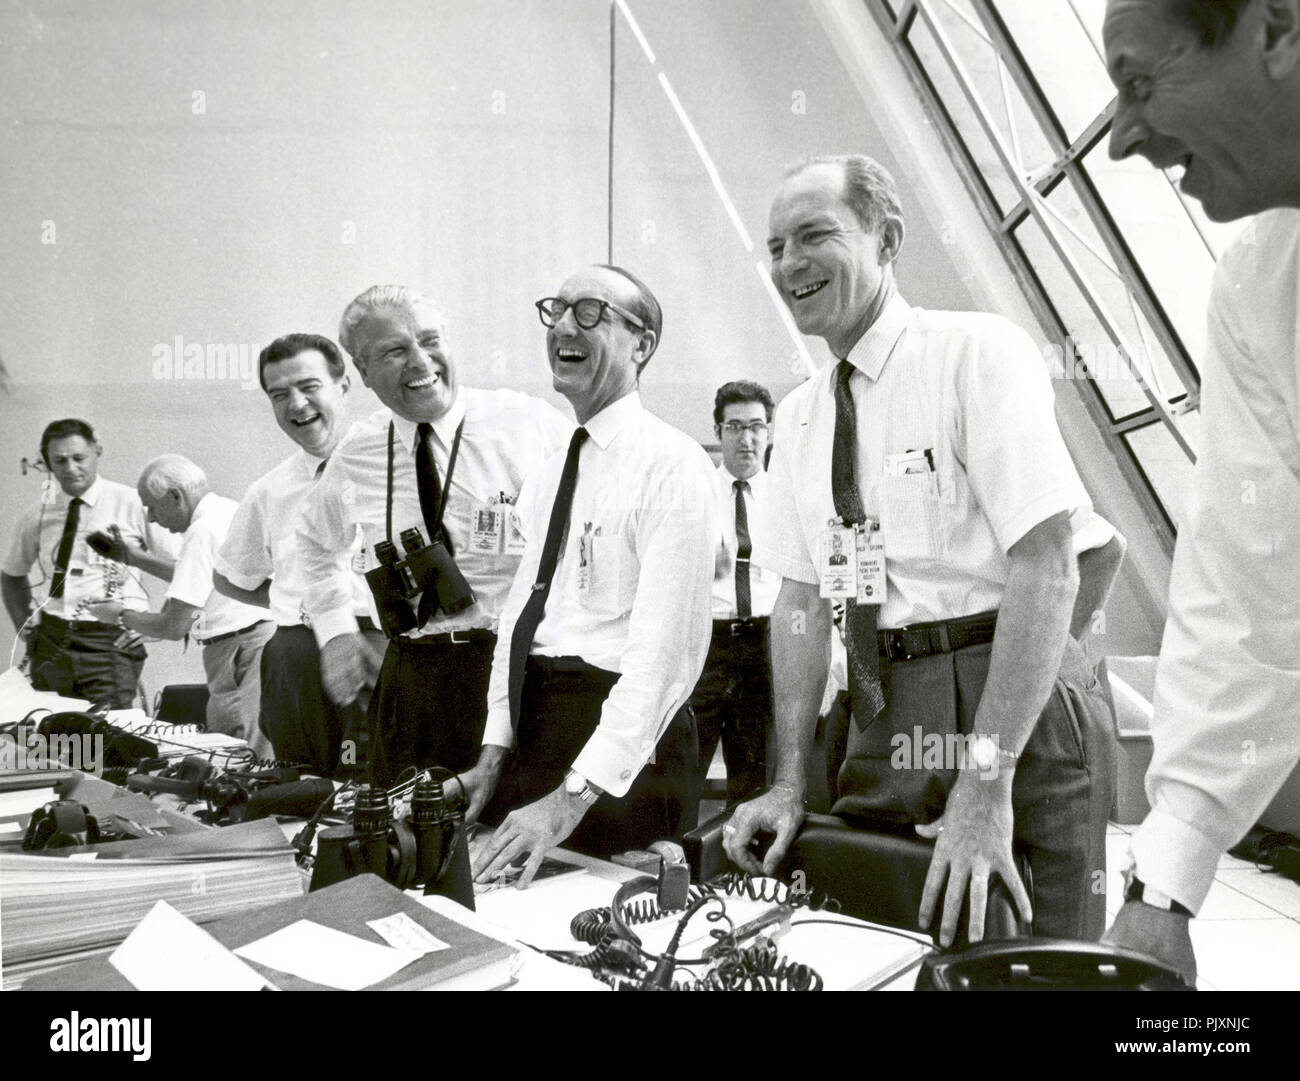 Cape Canaveral, FL - (FILE) -- Apollo 11 mission officials relax in the Launch Control Center following the successful Apollo 11 liftoff on Wednesday, July 16, 1969. From left to right are: Charles W. Mathews, Deputy Associate Administrator for Manned Space Flight; Dr. Wernher von Braun, Director of the Marshall Space Flight Center; George Mueller, Associate Administrator for the Office of Manned Space Flight; Lt. Gen. Samuel C. Phillips, Director of the Apollo Program Credit: NASA via CNP /MediaPunch - Stock Image